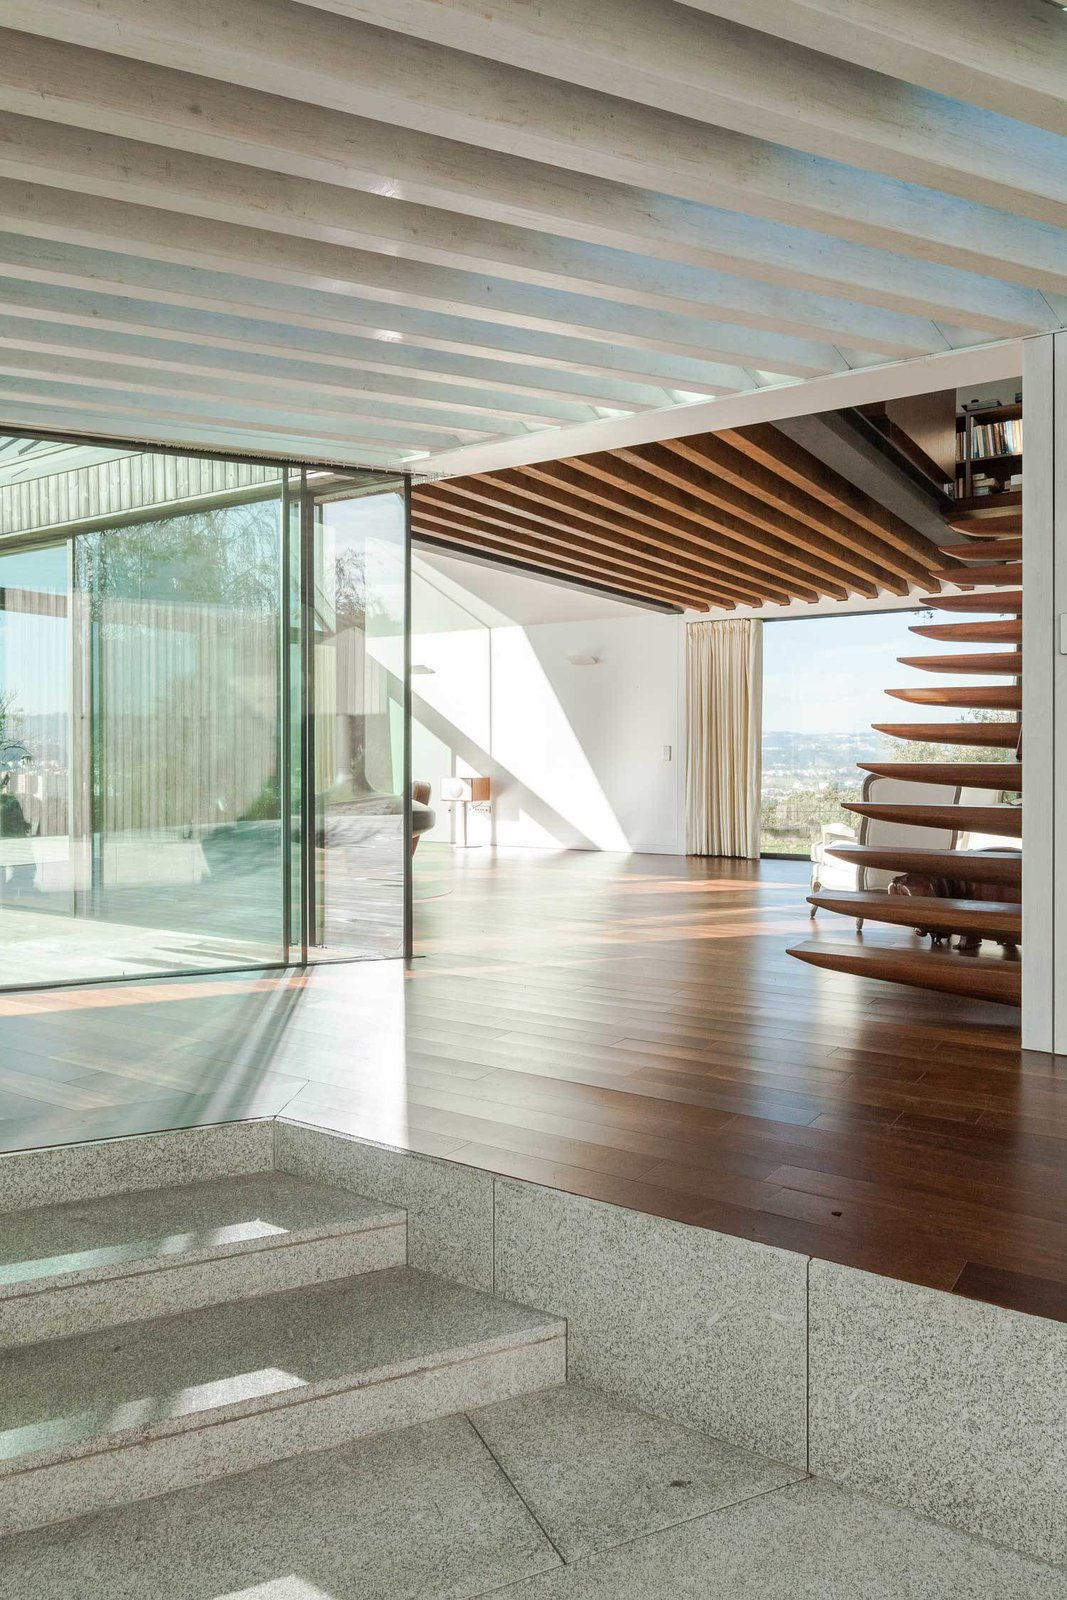 """The connecting area between the four houses has an open joisted pine ceiling that offers a masterful transition between the coarse, weathered exterior and the polished rooms—all lined with smooth Sucupira wood and white plaster board. """"We wanted to make a clear contrast between the interior surfaces of the house and the corresponding exterior surfaces,"""" de Carvalho says. Tagged: Staircase and Wood Tread.  House of Four Houses by Laura C. Mallonee"""